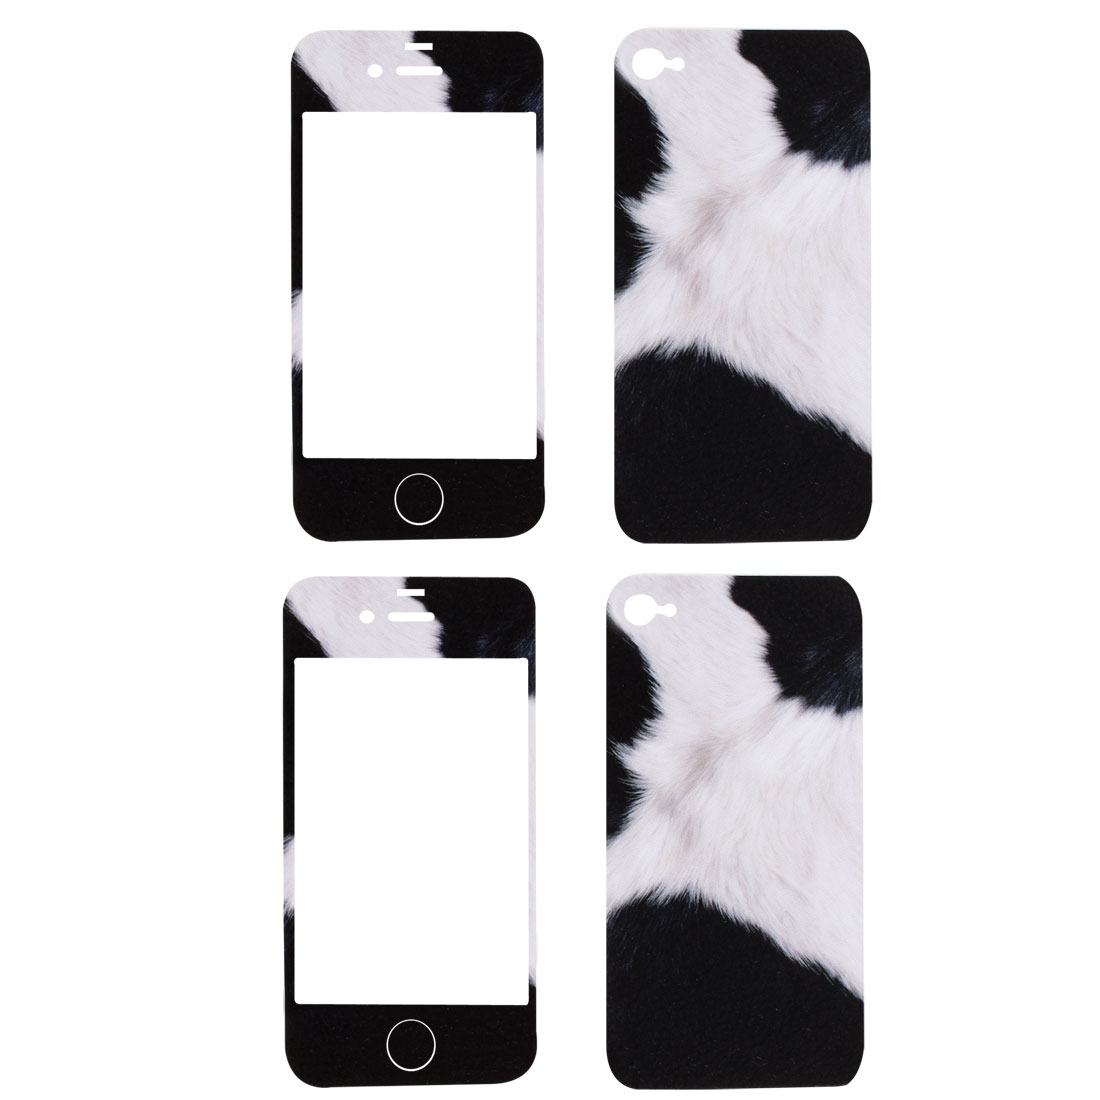 Black White Cat Pattern Vinyl Front Back Decal Sticker 2 Pcs for iPhone 4 4G 4S 4GS